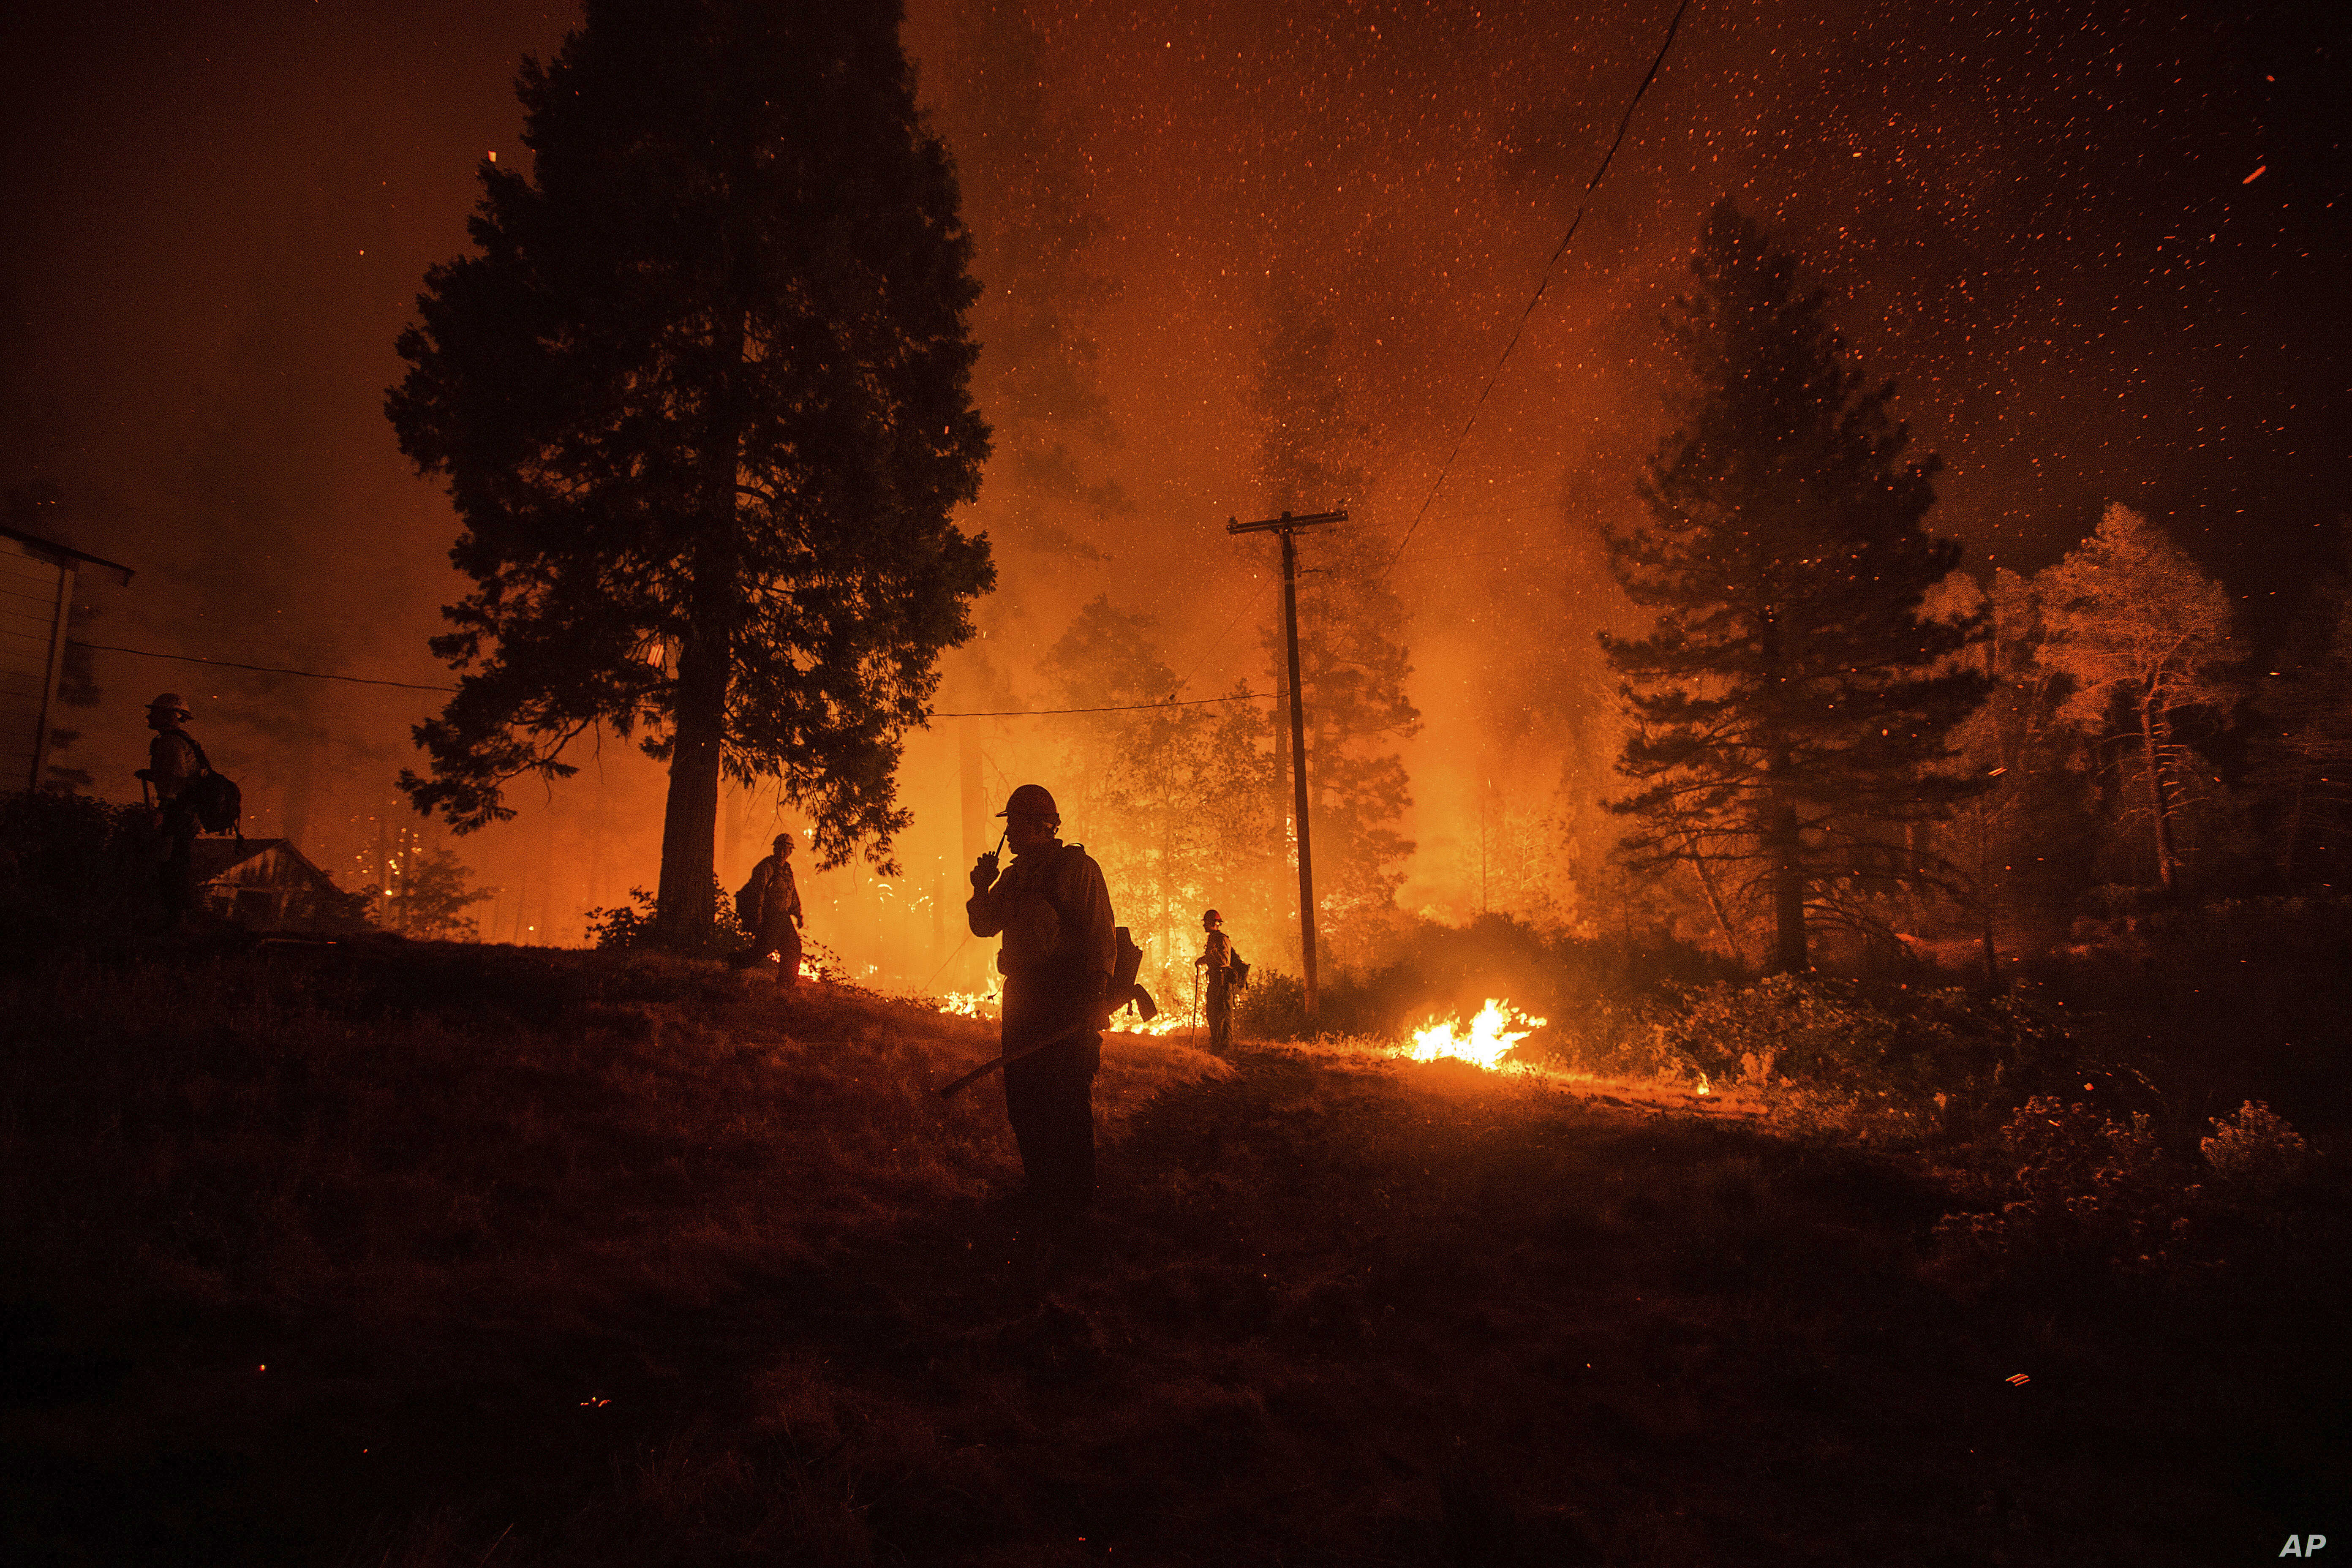 Firefighters monitor a backfire while battling the Delta Fire in the Shasta-Trinity National Forest, Calif., on Thursday, Sept. 6, 2018.